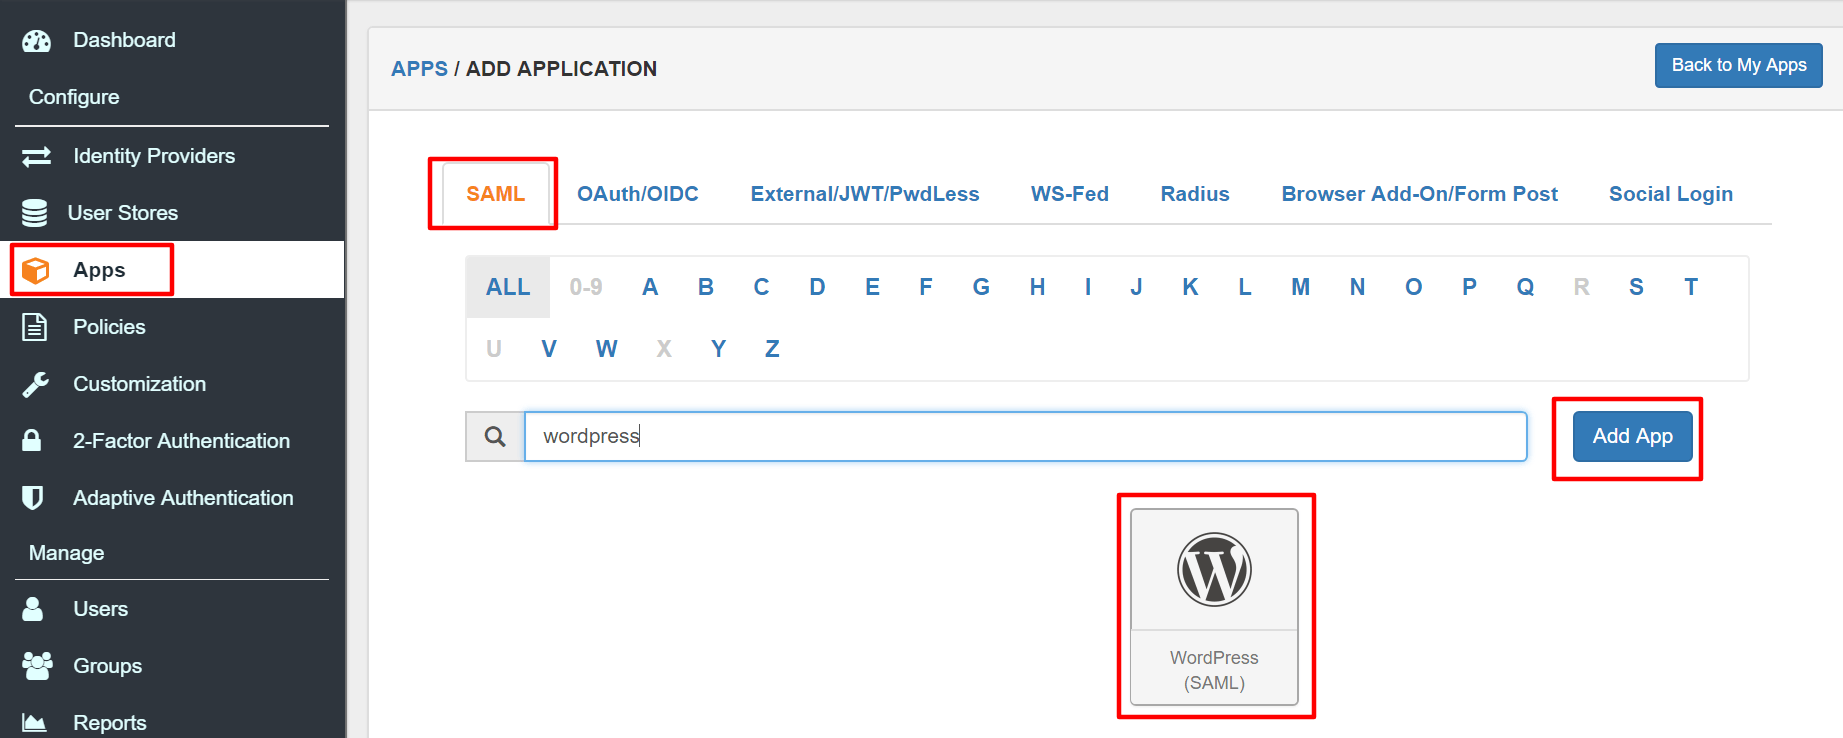 Apps Integration for WordPress as SP